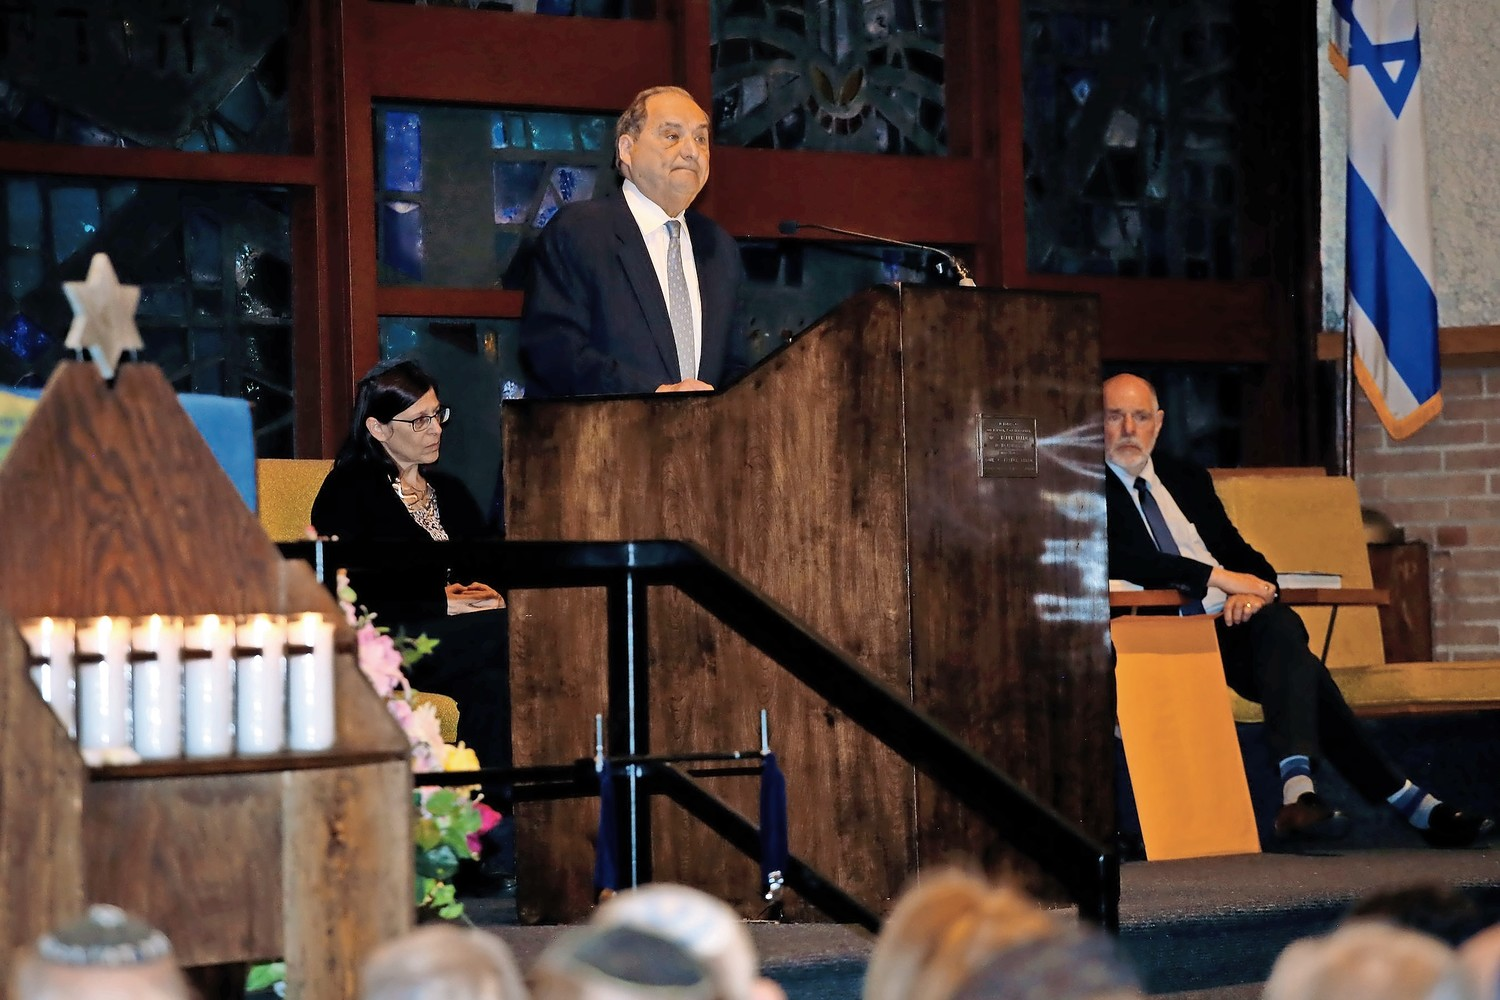 Holocaust survivor Abraham Foxman spoke to congregants about the importance of fighting anti-Semitism.